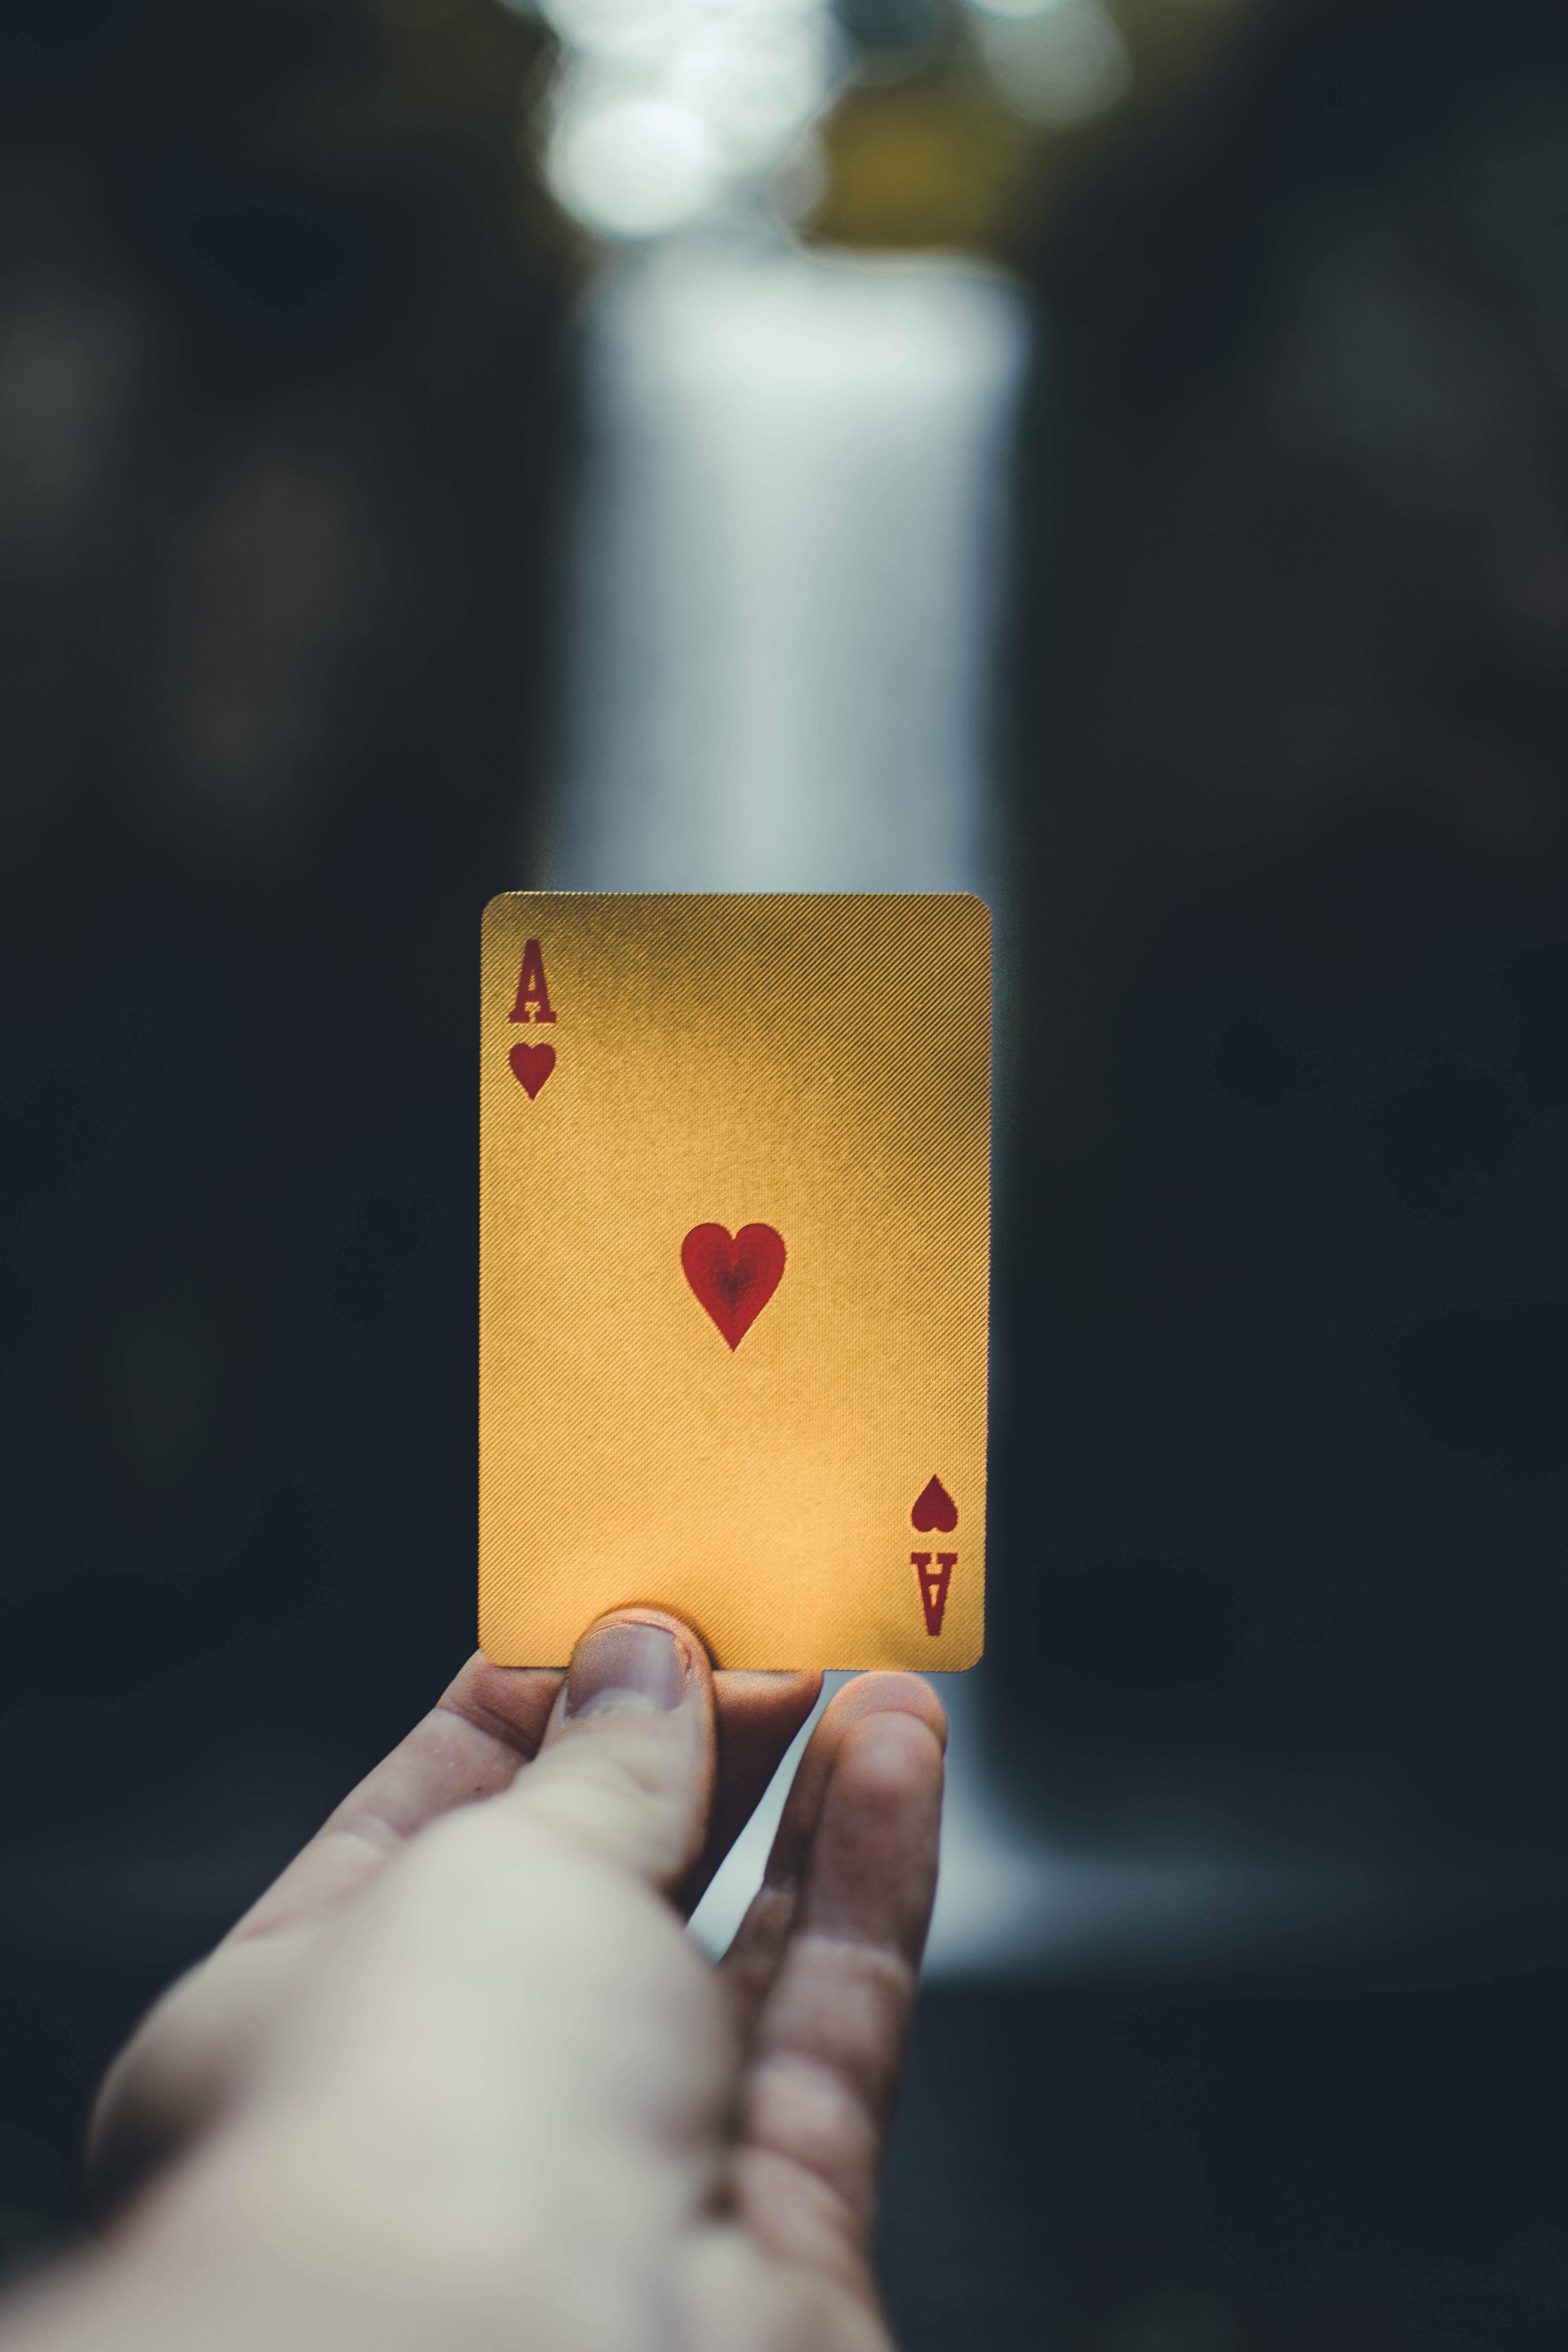 person holding ace of heart playing card